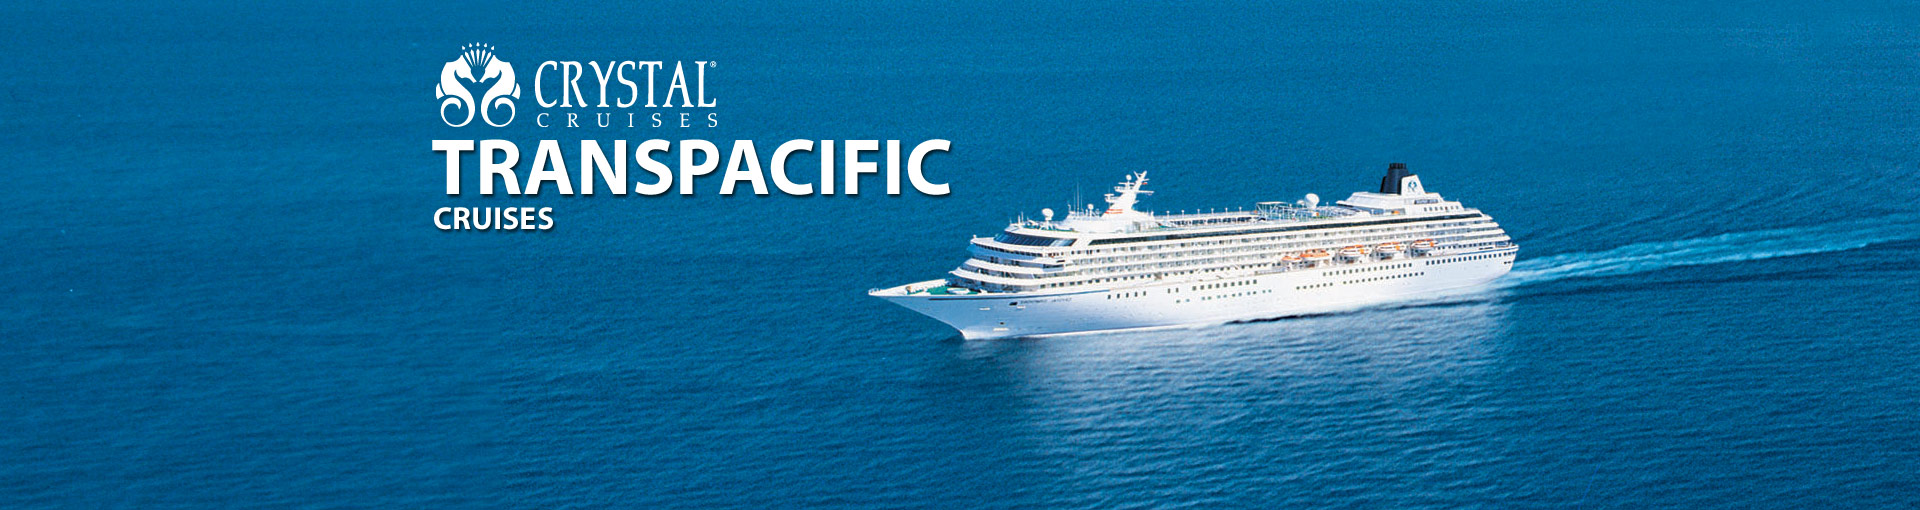 cruise lines celebrity cruises destination transpacific